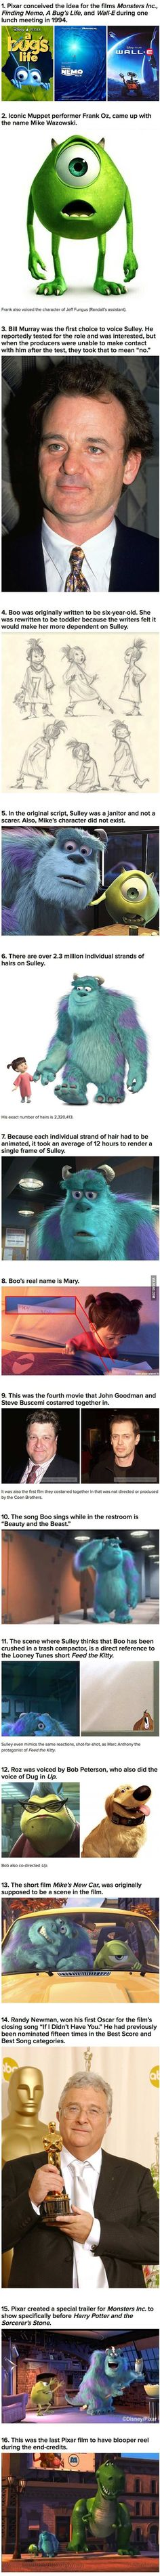 monsters inc - I can't get over boo's song. AAAHHH what is it?!?!?